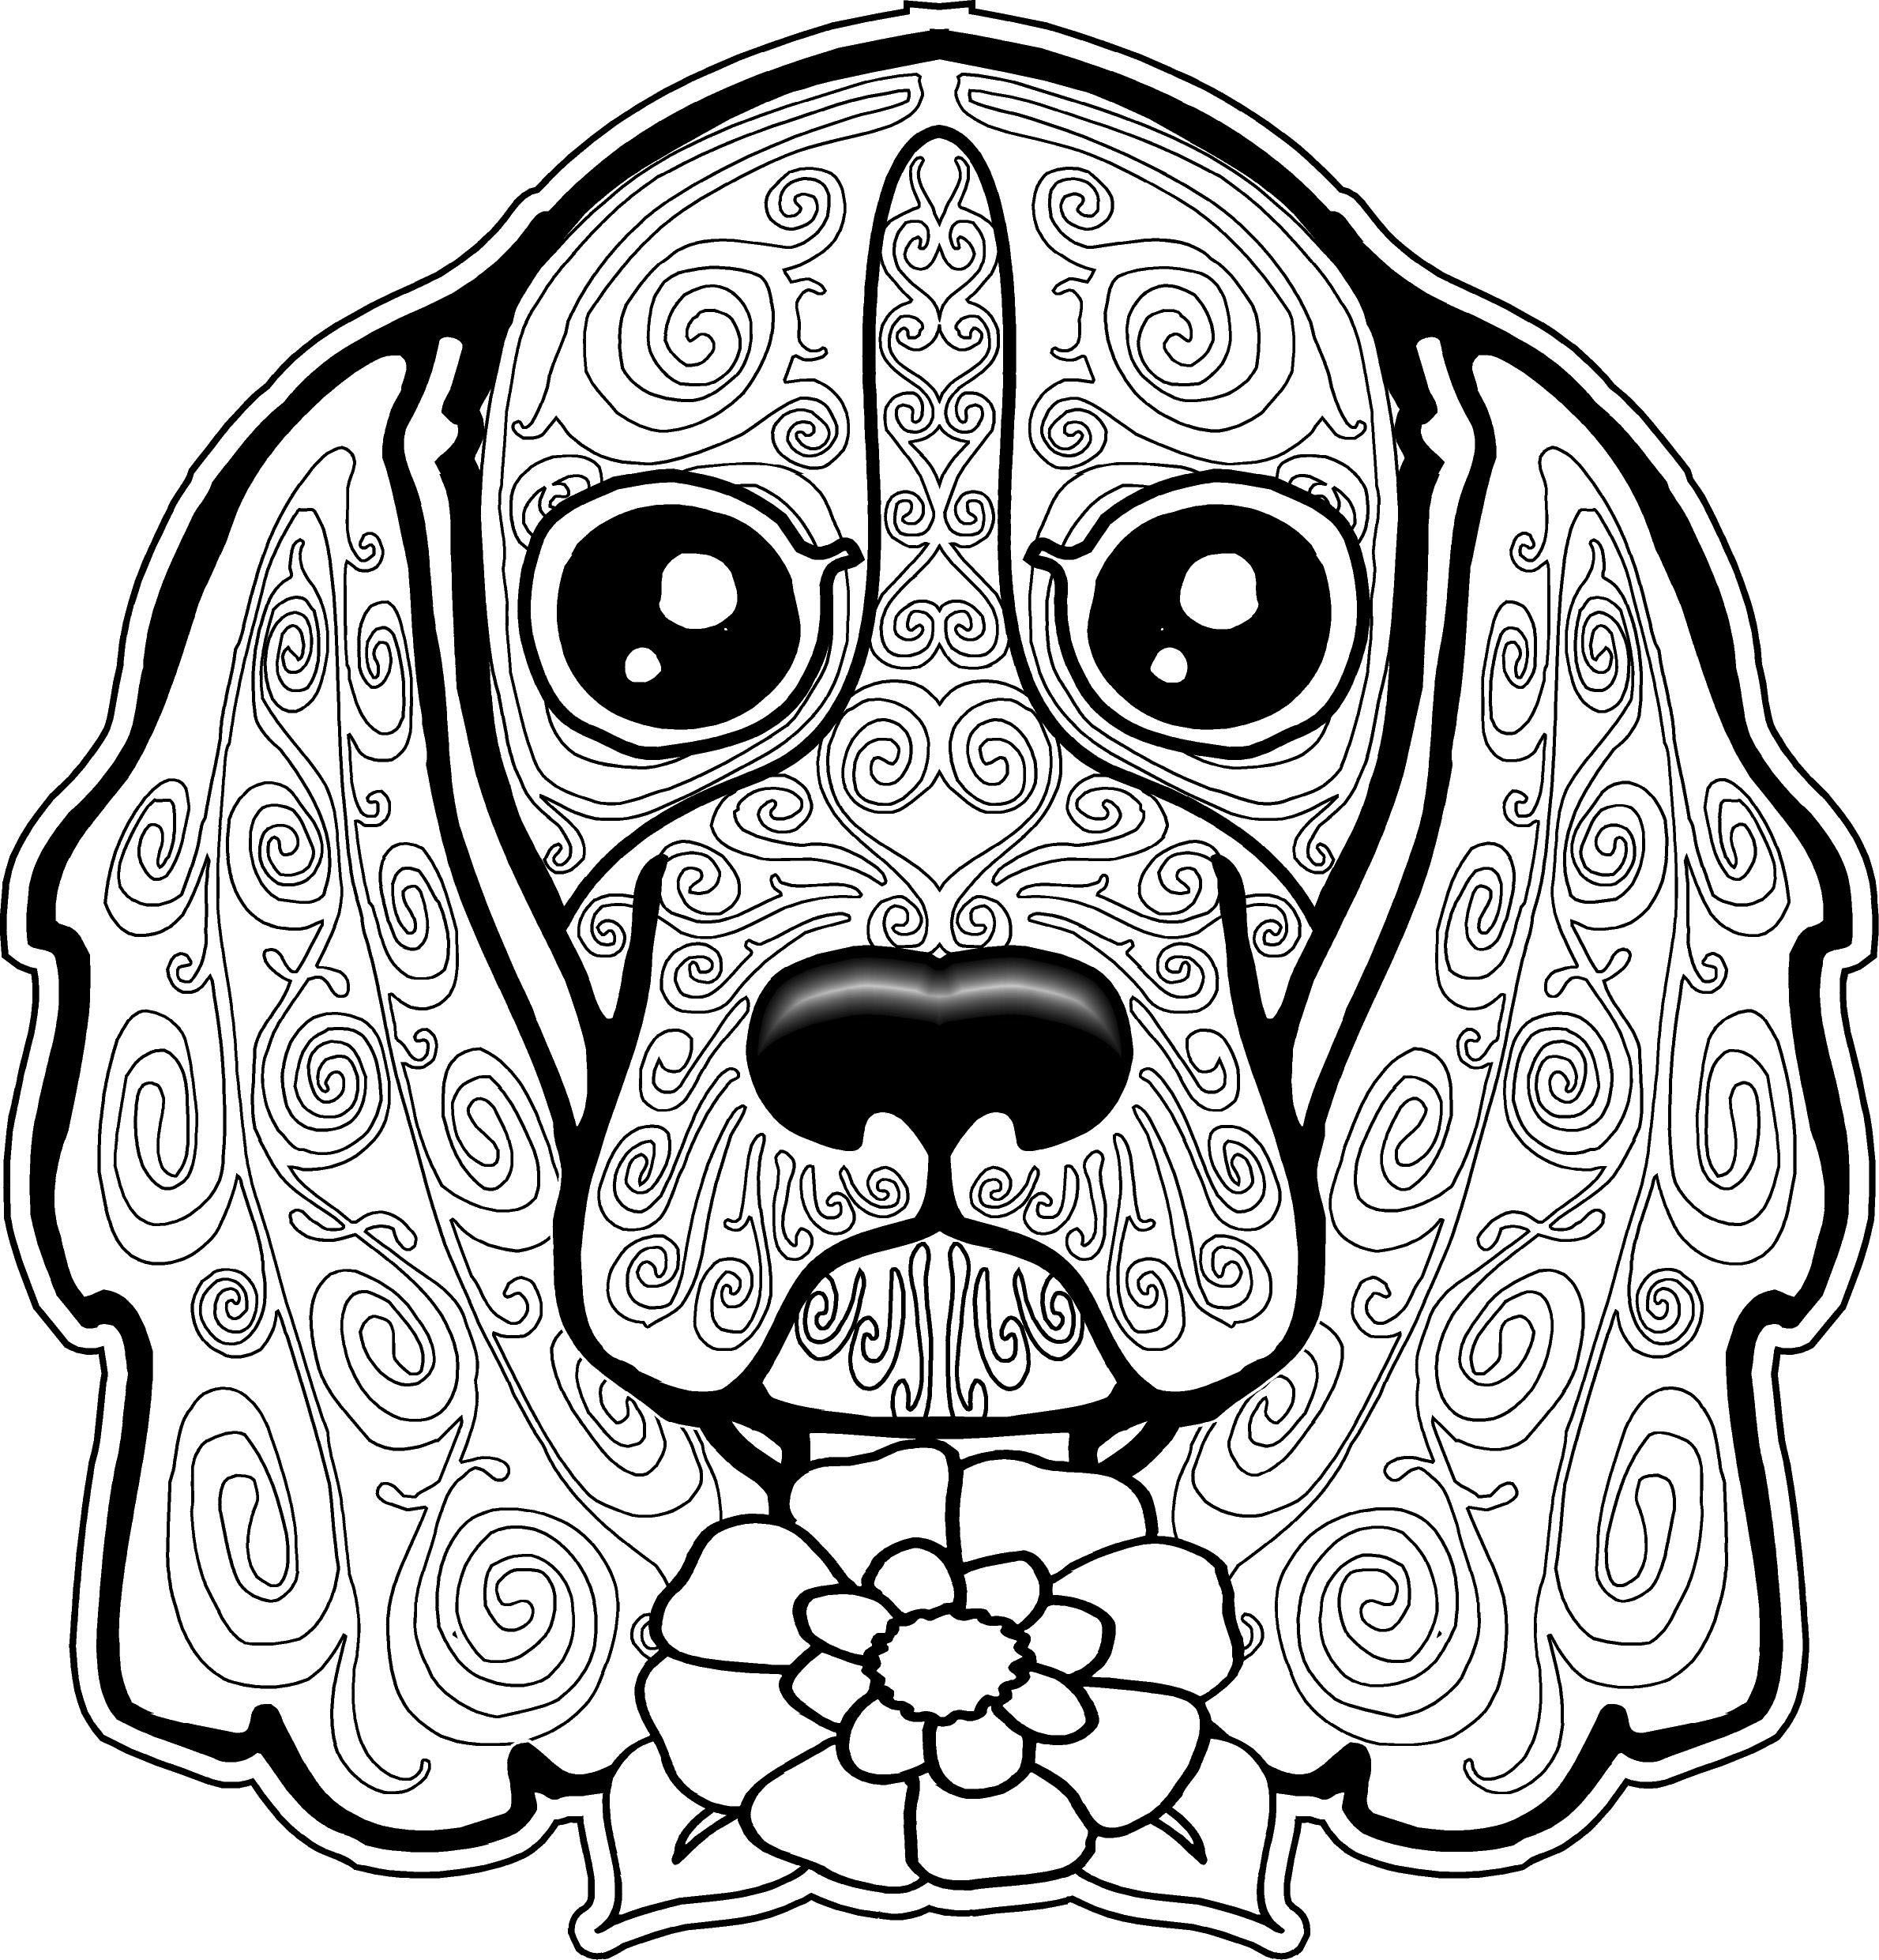 Dog Coloring Page Dog Coloring Pages Free Coloring Page Free Coloring Pages For Adults Sugar Skull Puppy Coloring Pages Dog Coloring Page Dog Coloring Book